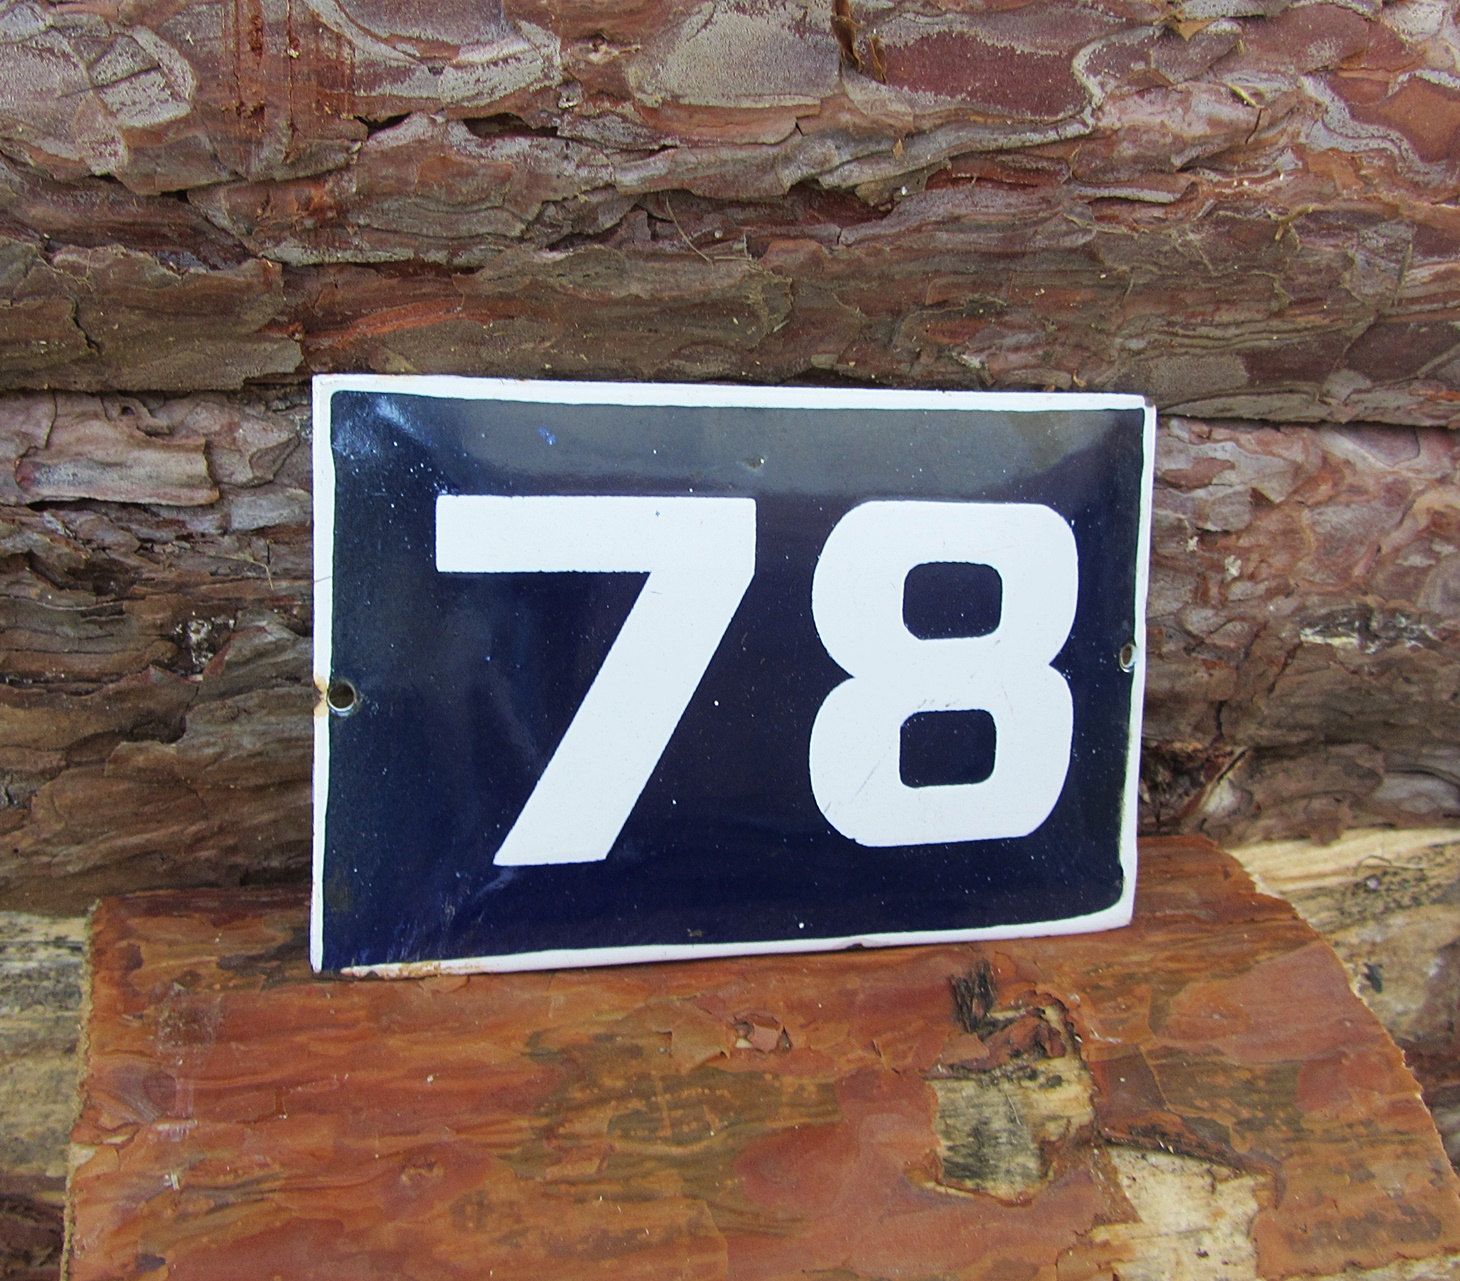 Vintage Enamel House Number 19 Sign Blue And White Door Numbers Antique Street Sign Enameled Porcelain Retro Home Decor Door Plate